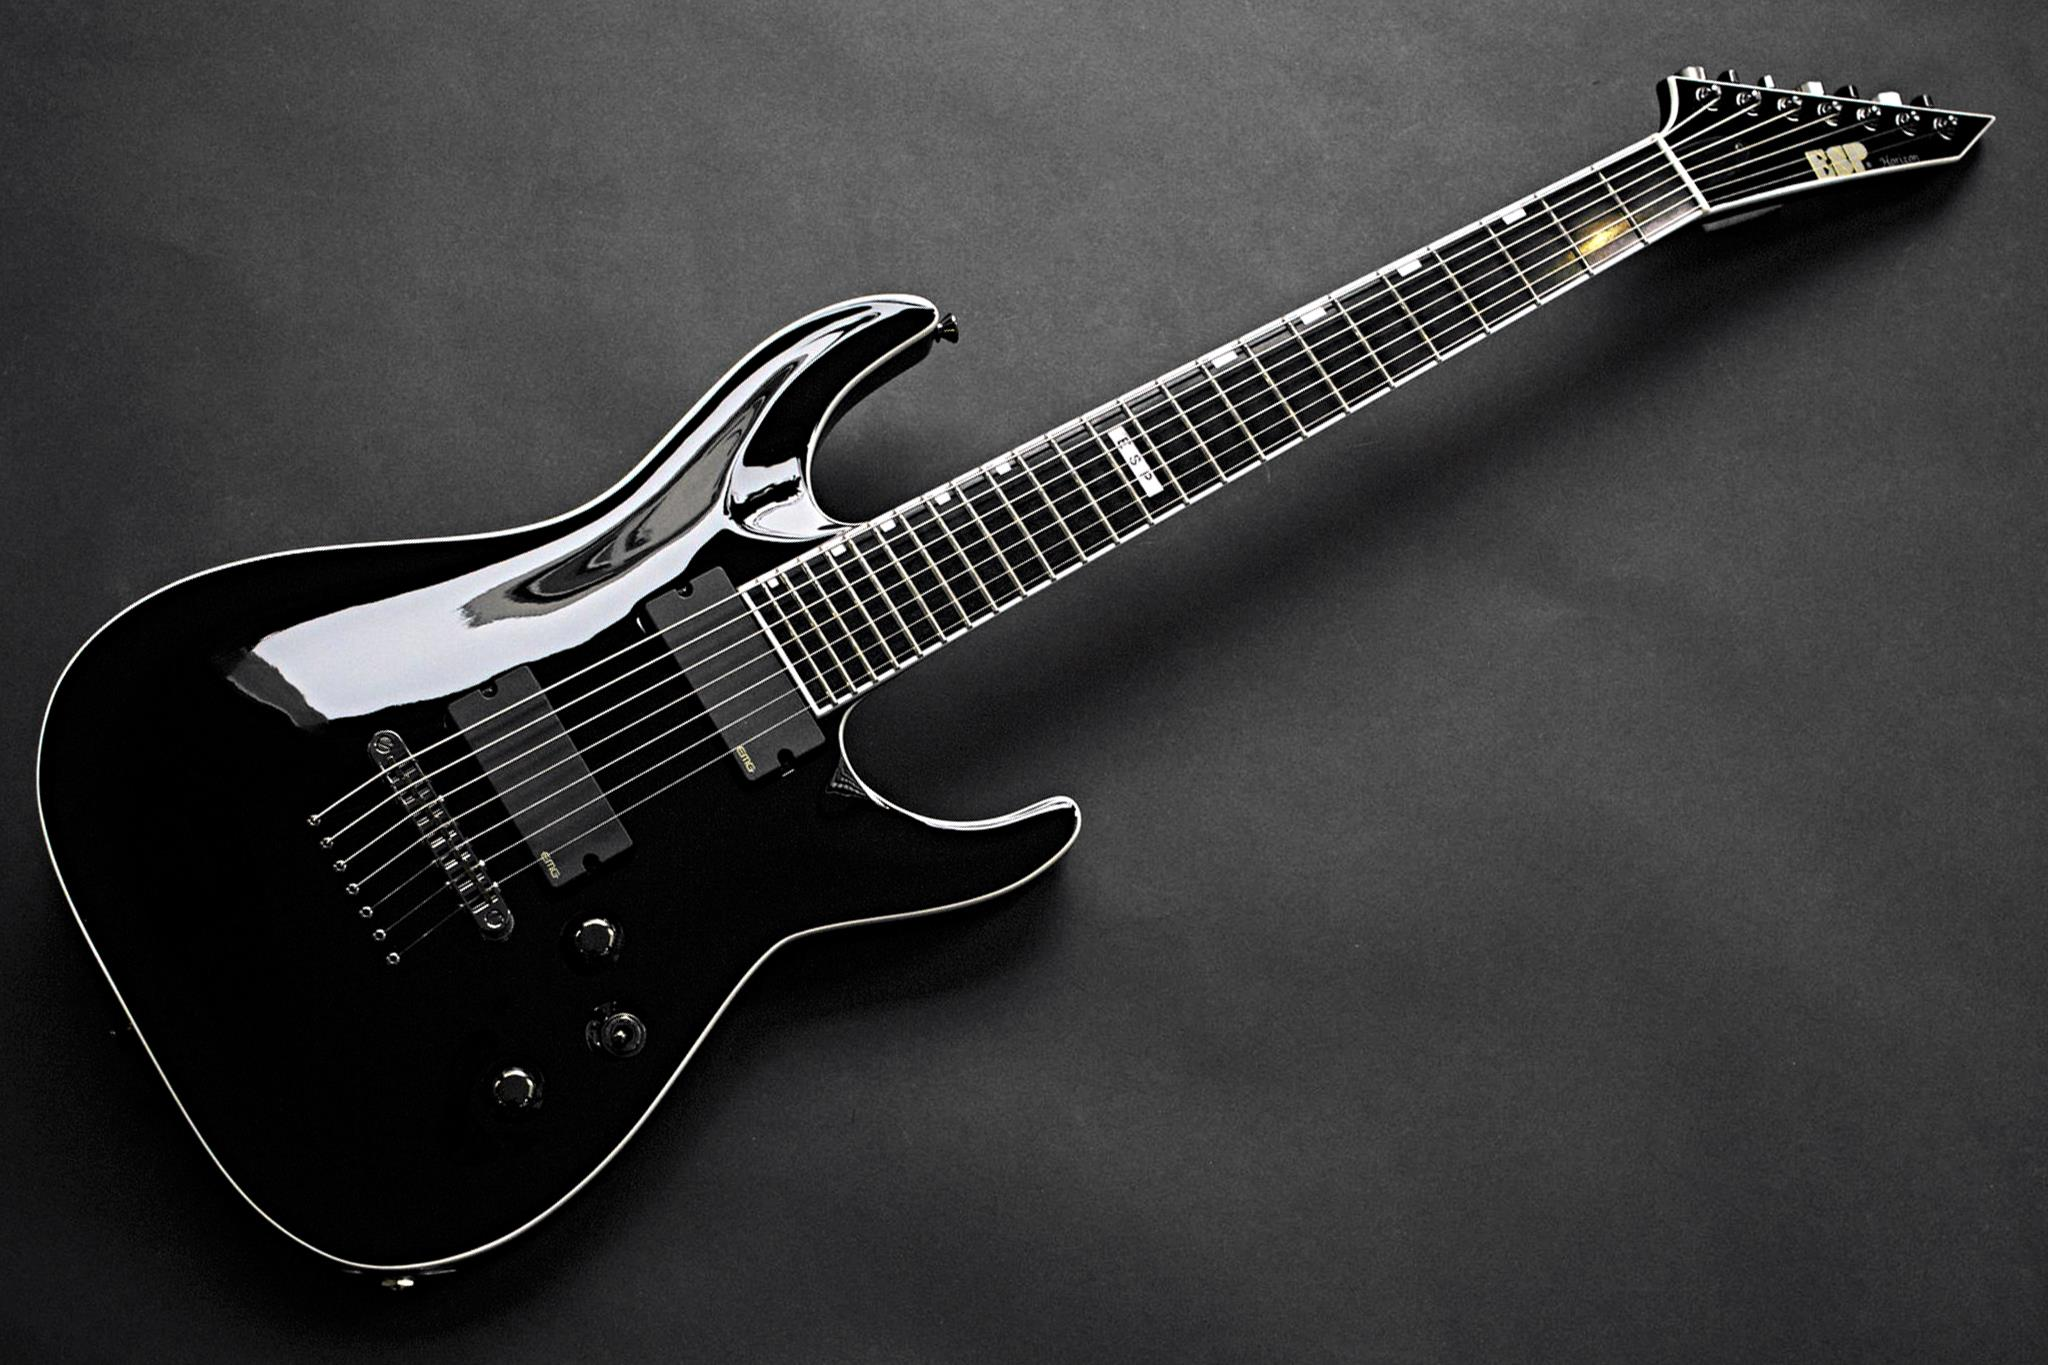 esp-horizon-nt-7-black-755776.jpg